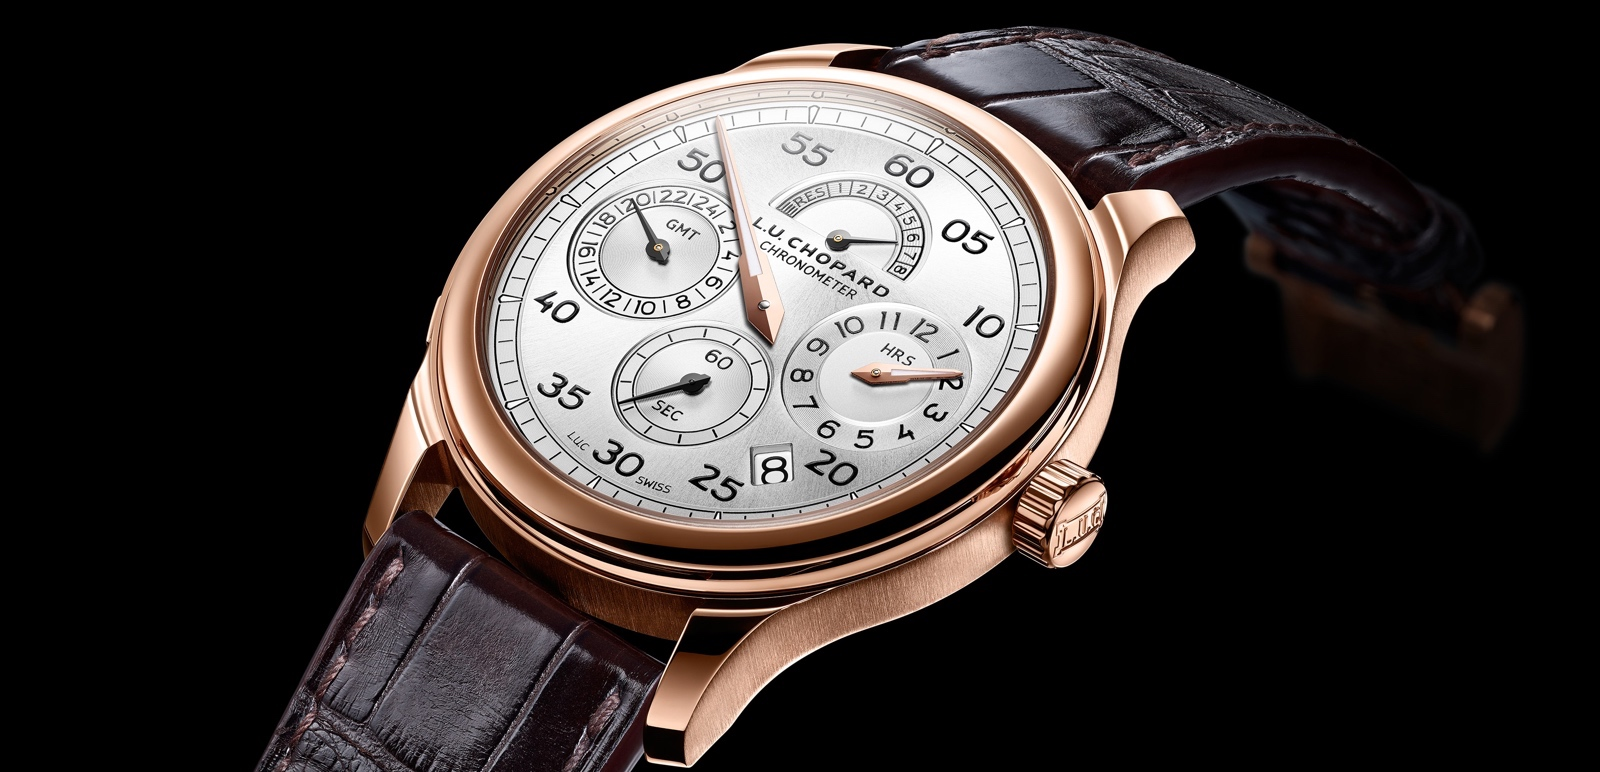 Chopard-LUC-Regulator